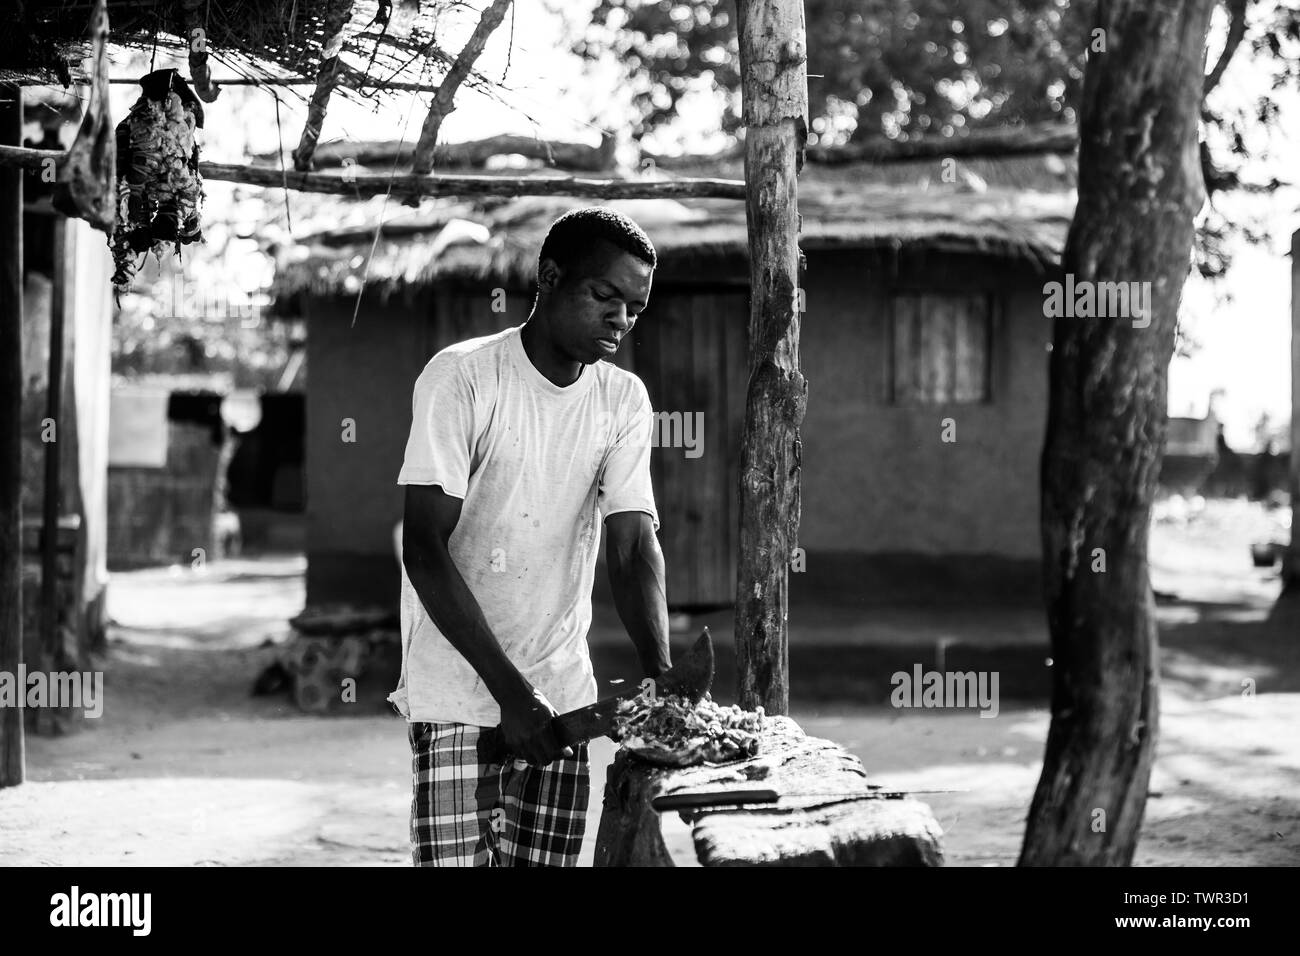 A street butcher cutting a piece of meat with his panga knife in front of a hut - Stock Image